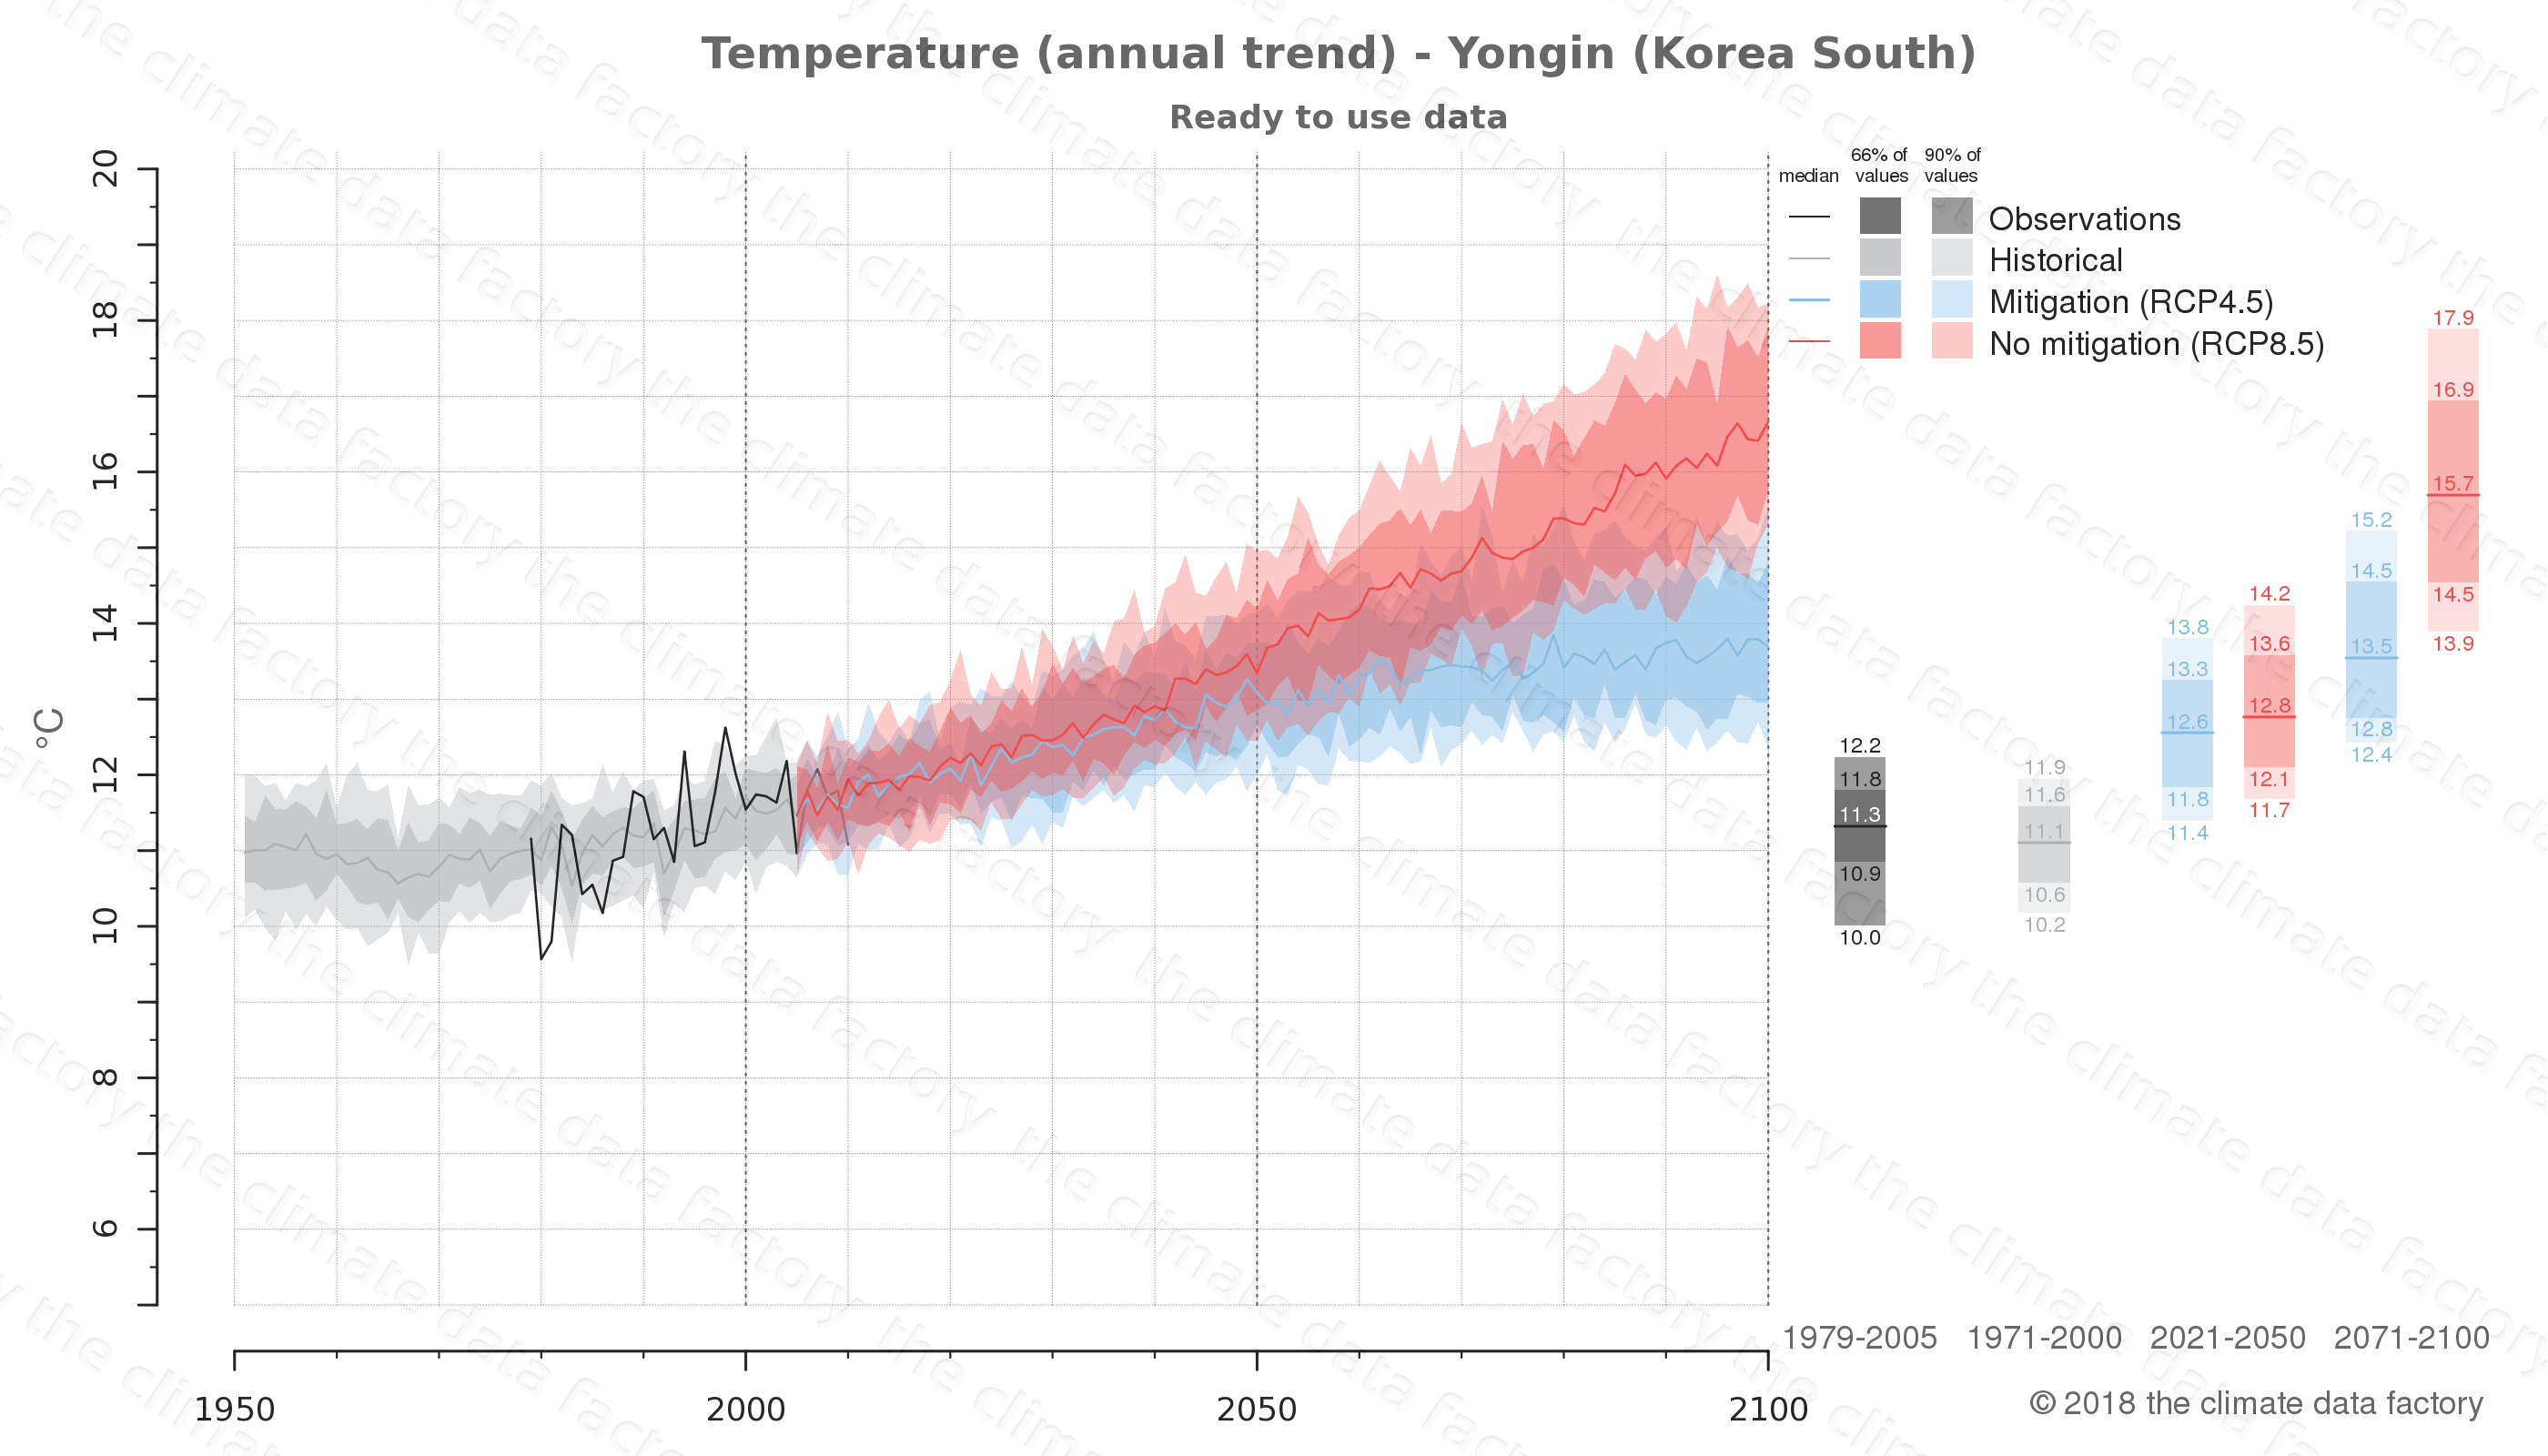 climate change data policy adaptation climate graph city data temperature yongin south korea